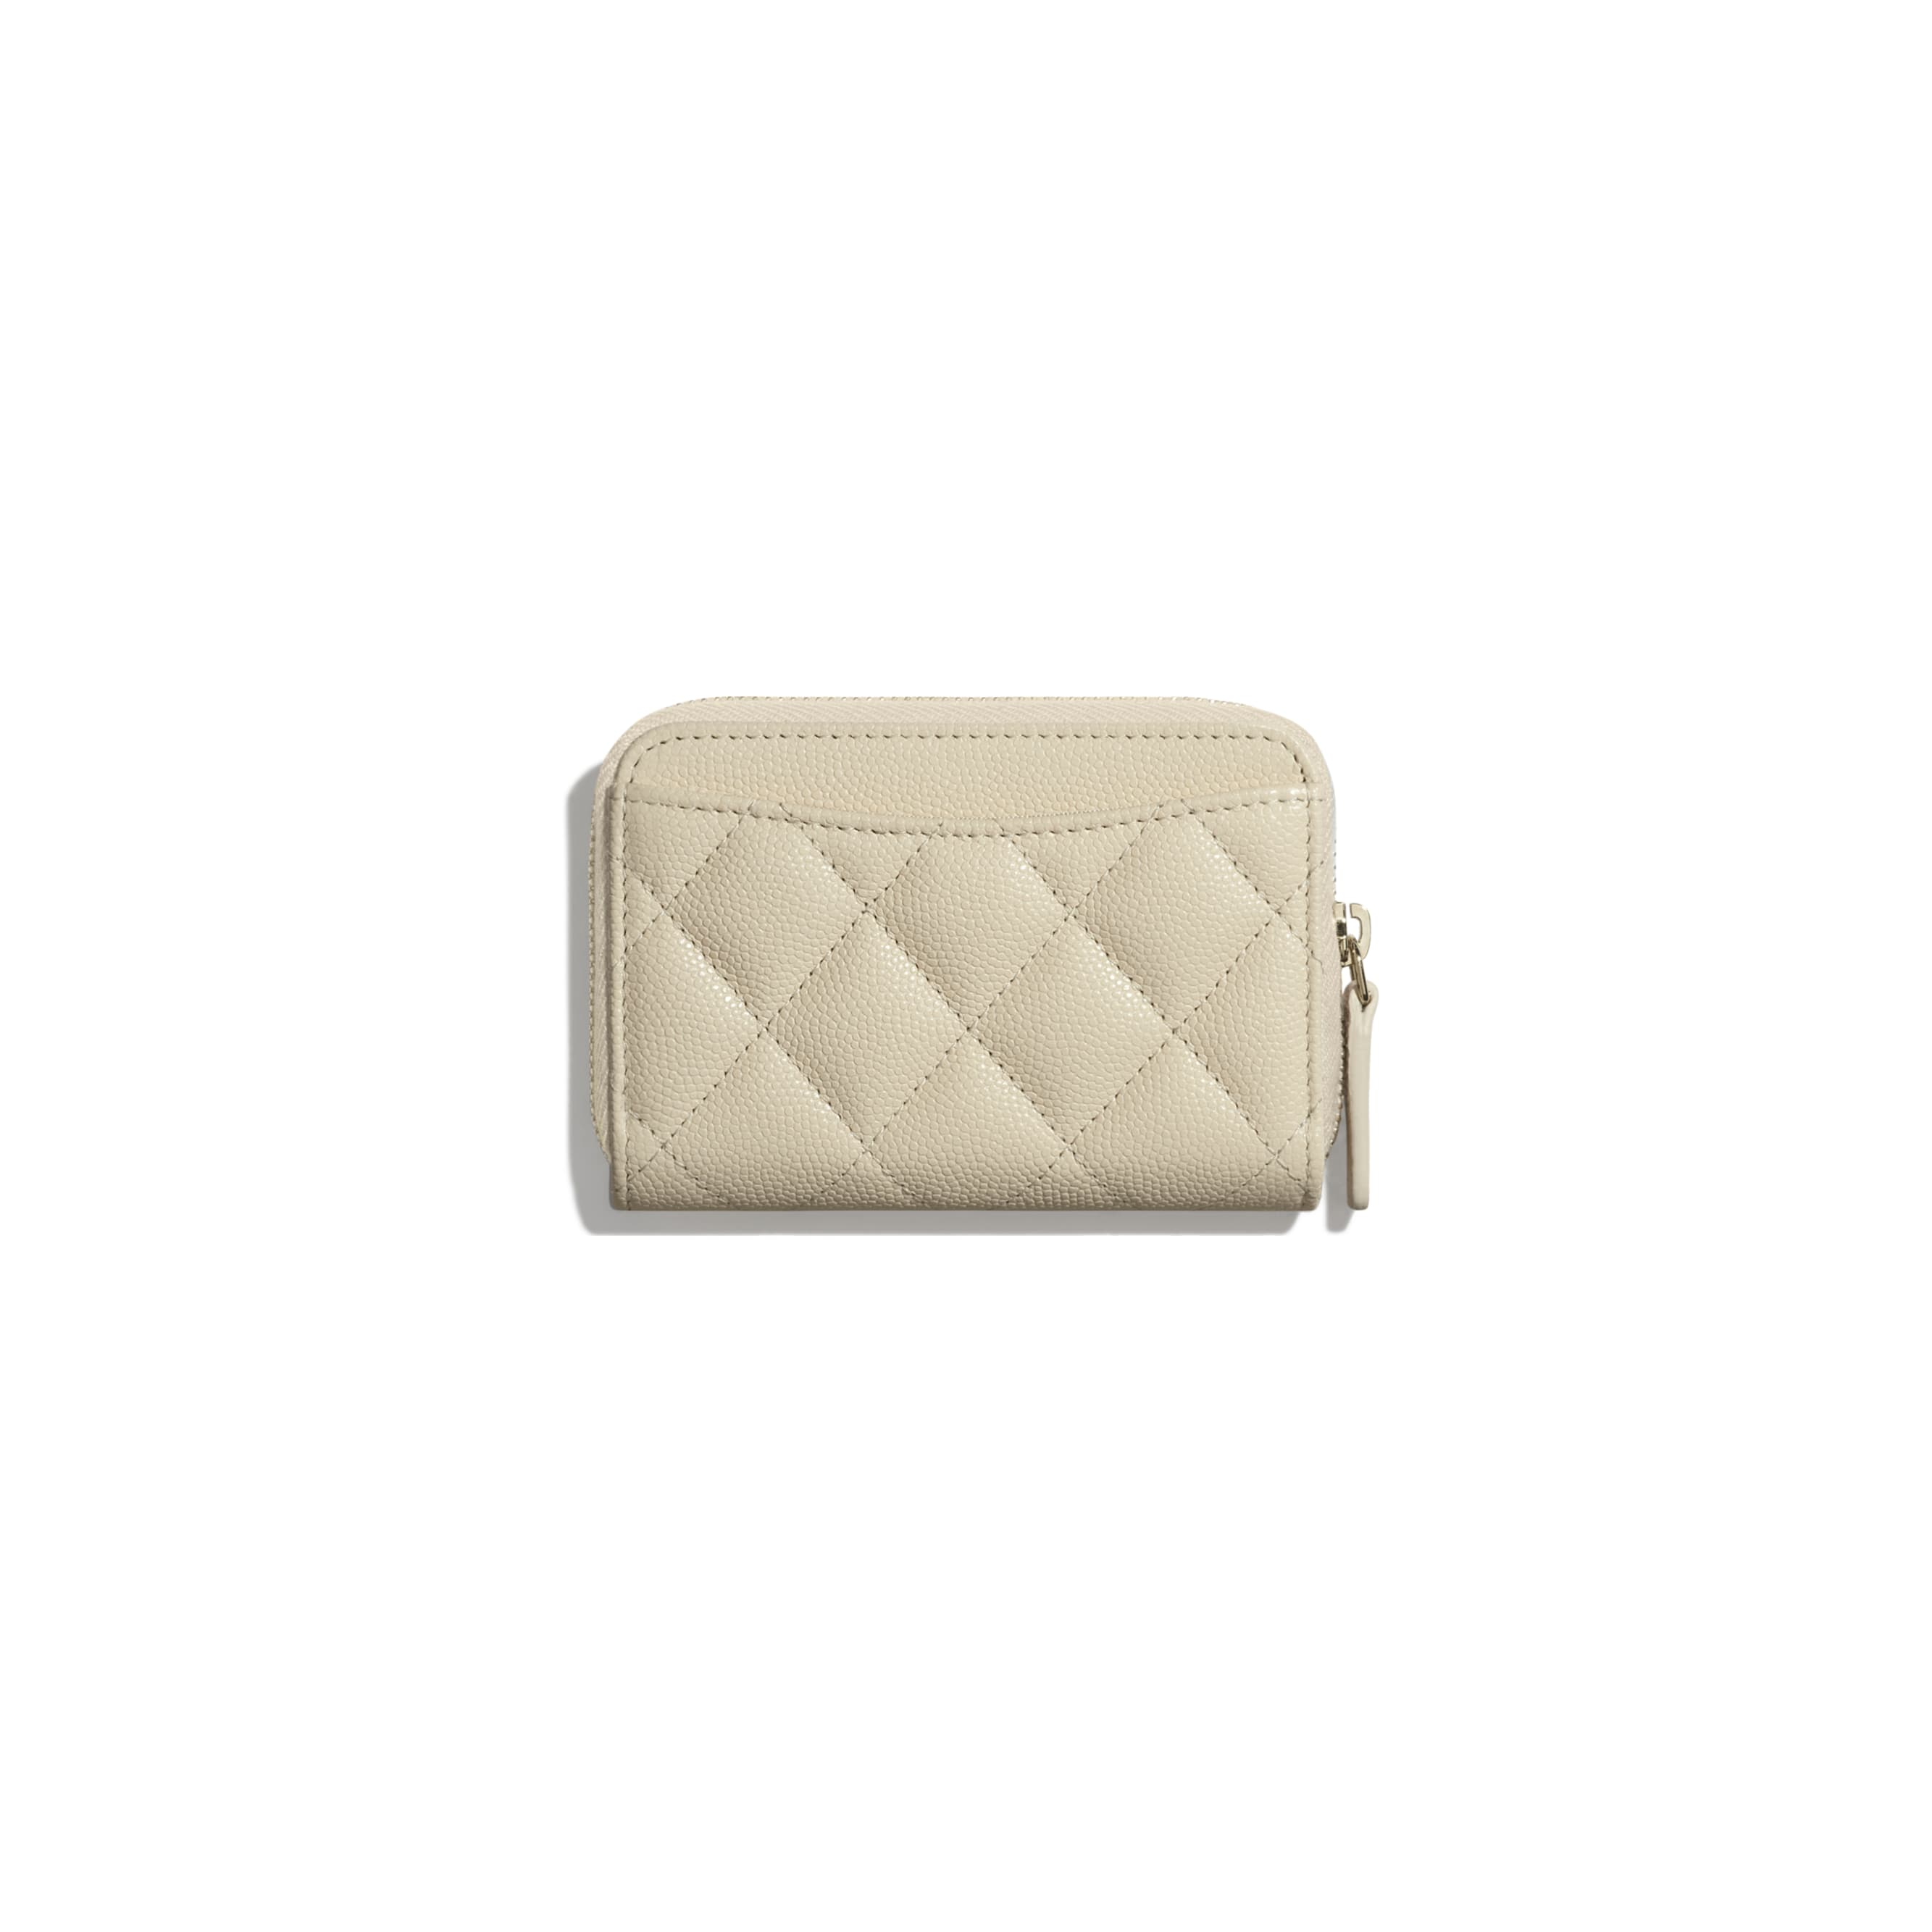 Classic Zipped Coin Purse - Light Beige - Grained Calfskin & Gold-Tone Metal - Alternative view - see standard sized version